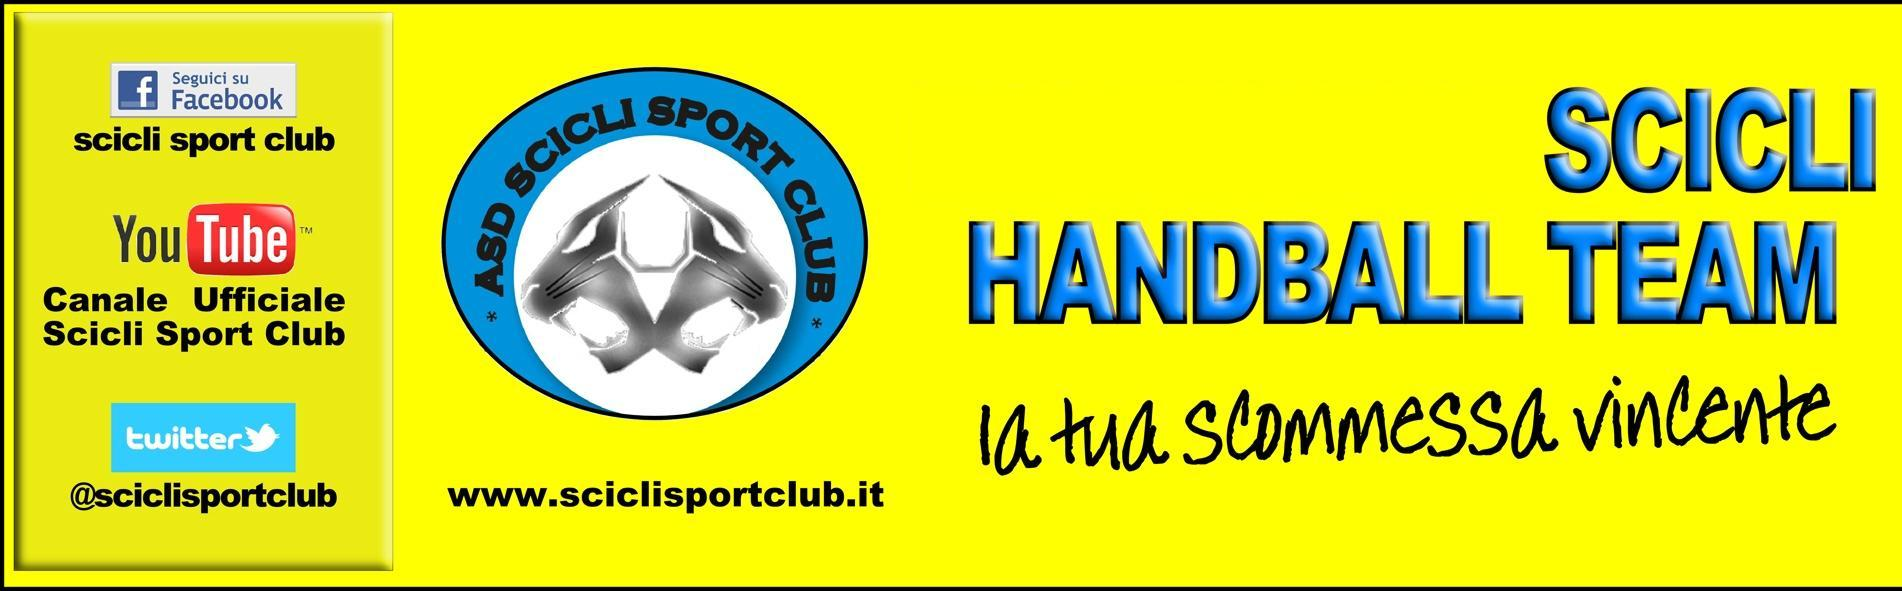 SCICLI HANDBALL TEAM